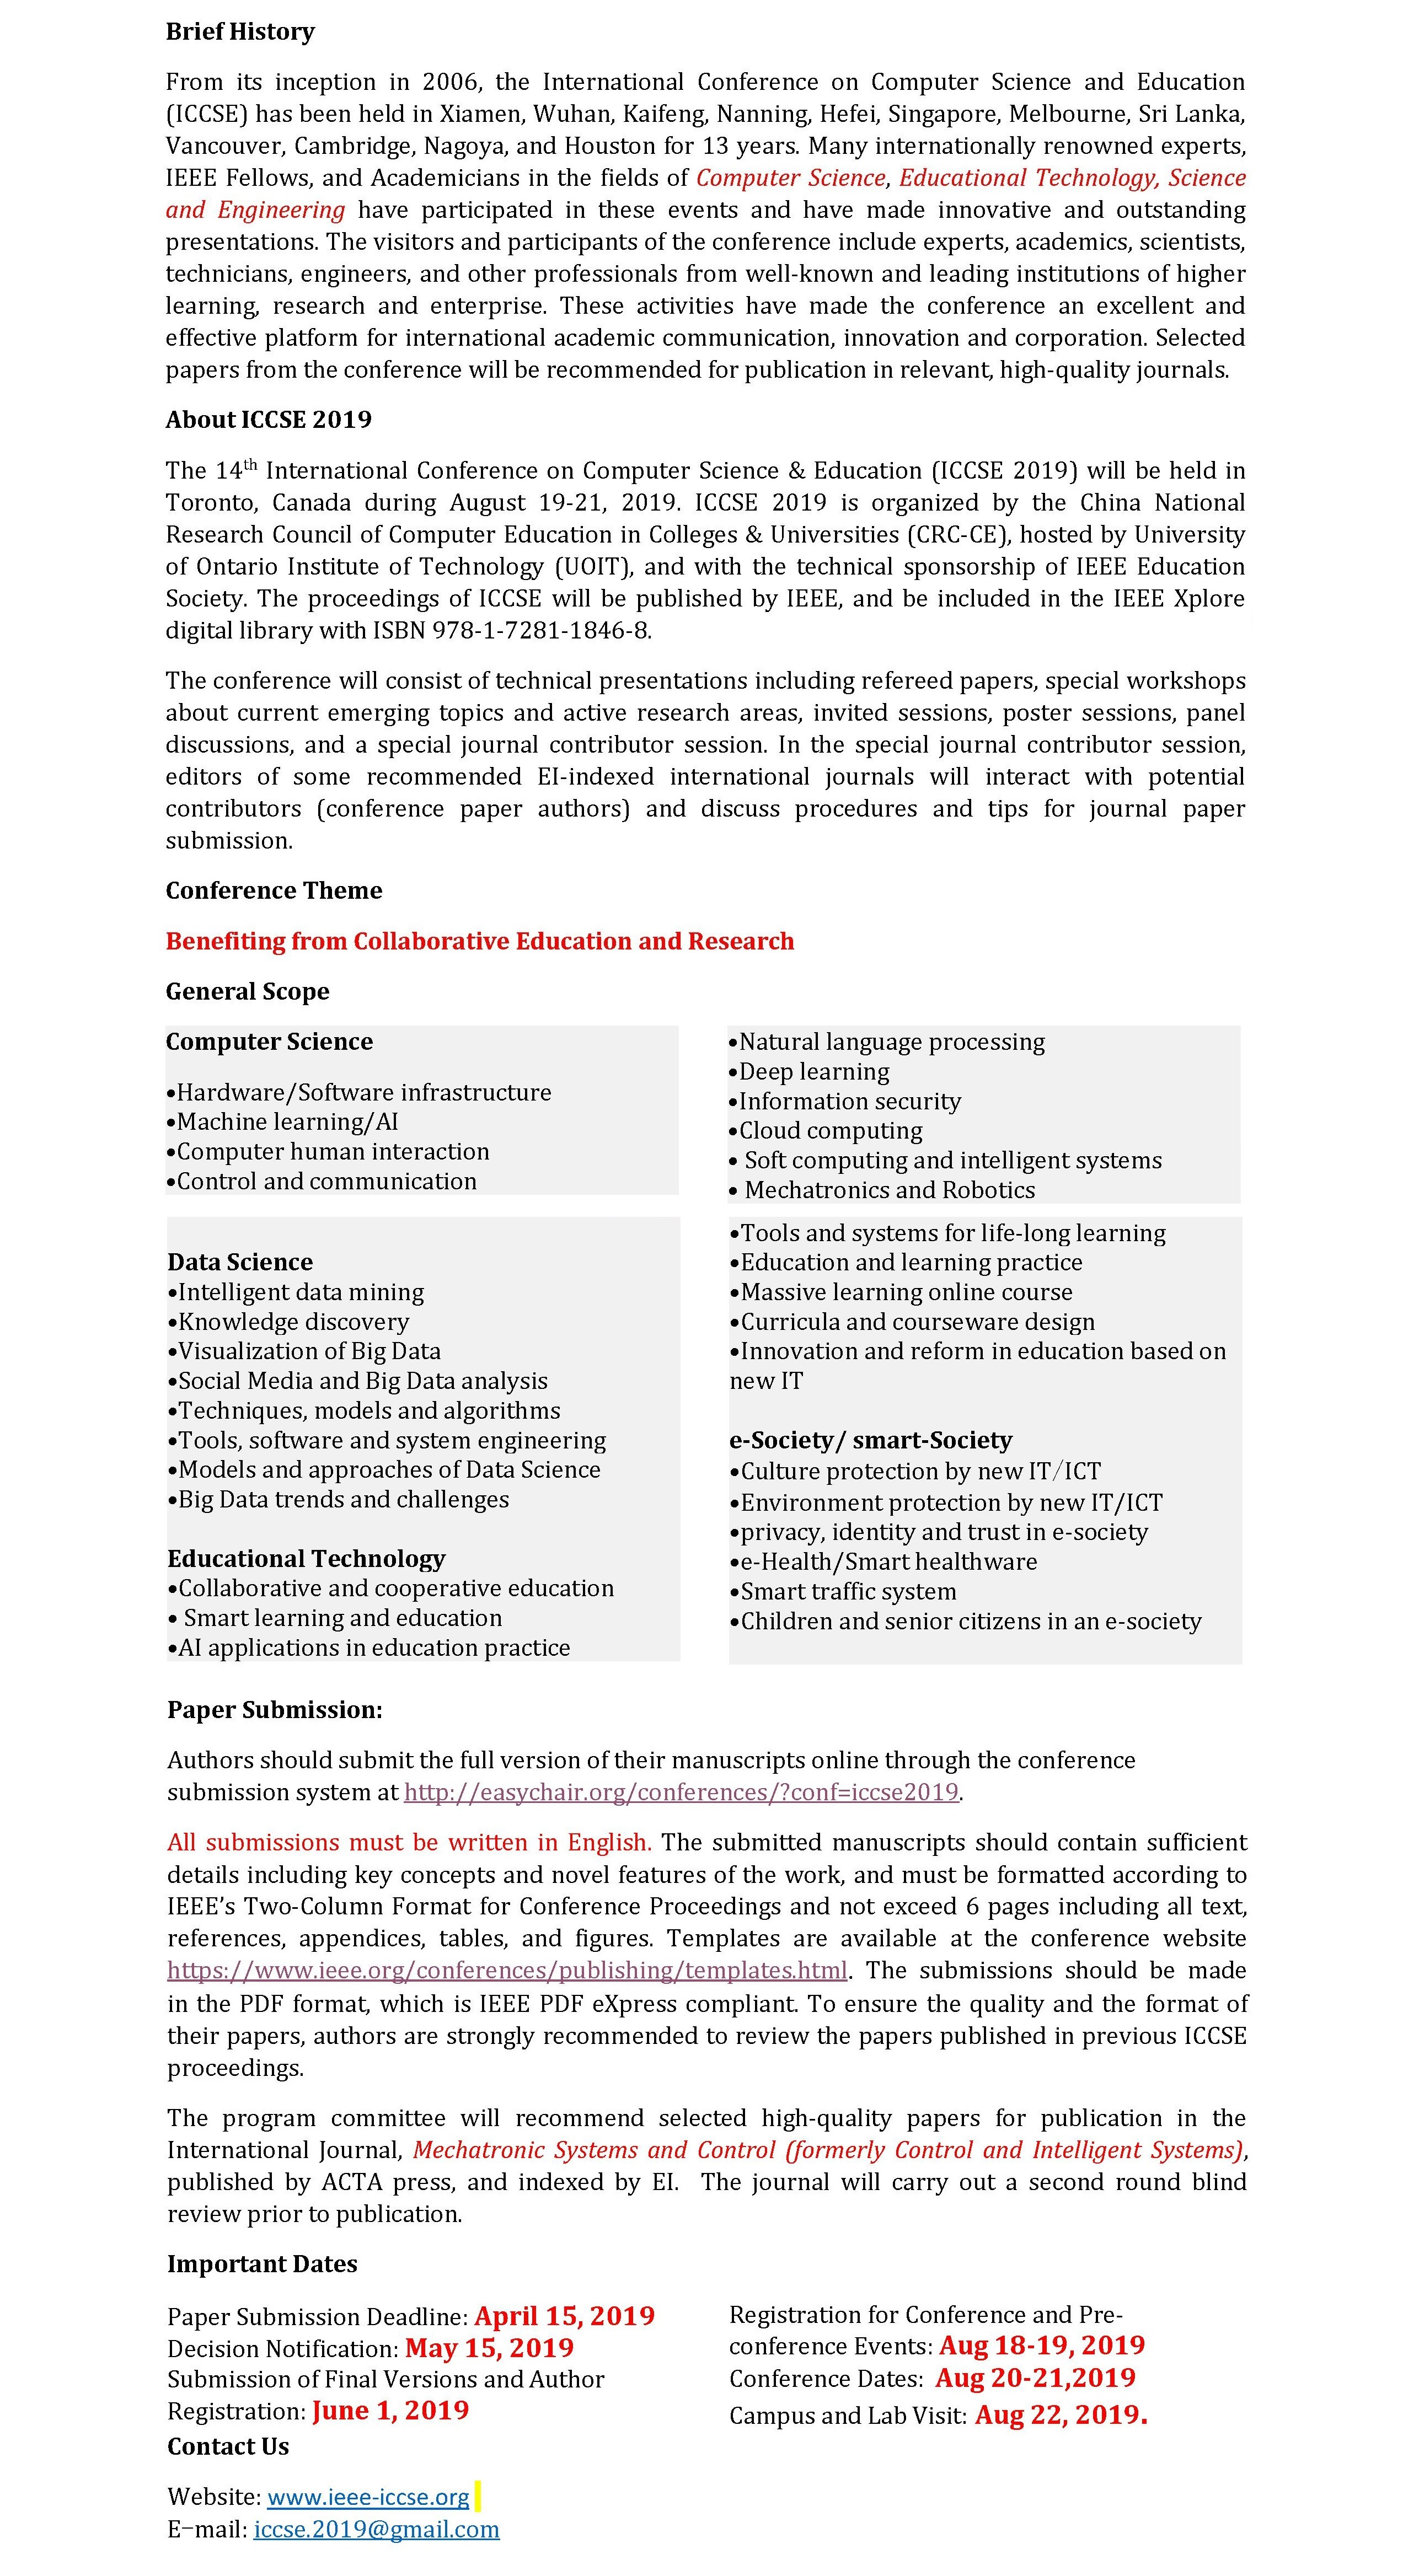 017 Ieee Researchs In Computer Science Pdf Cfp Phenomenal Research Papers Full